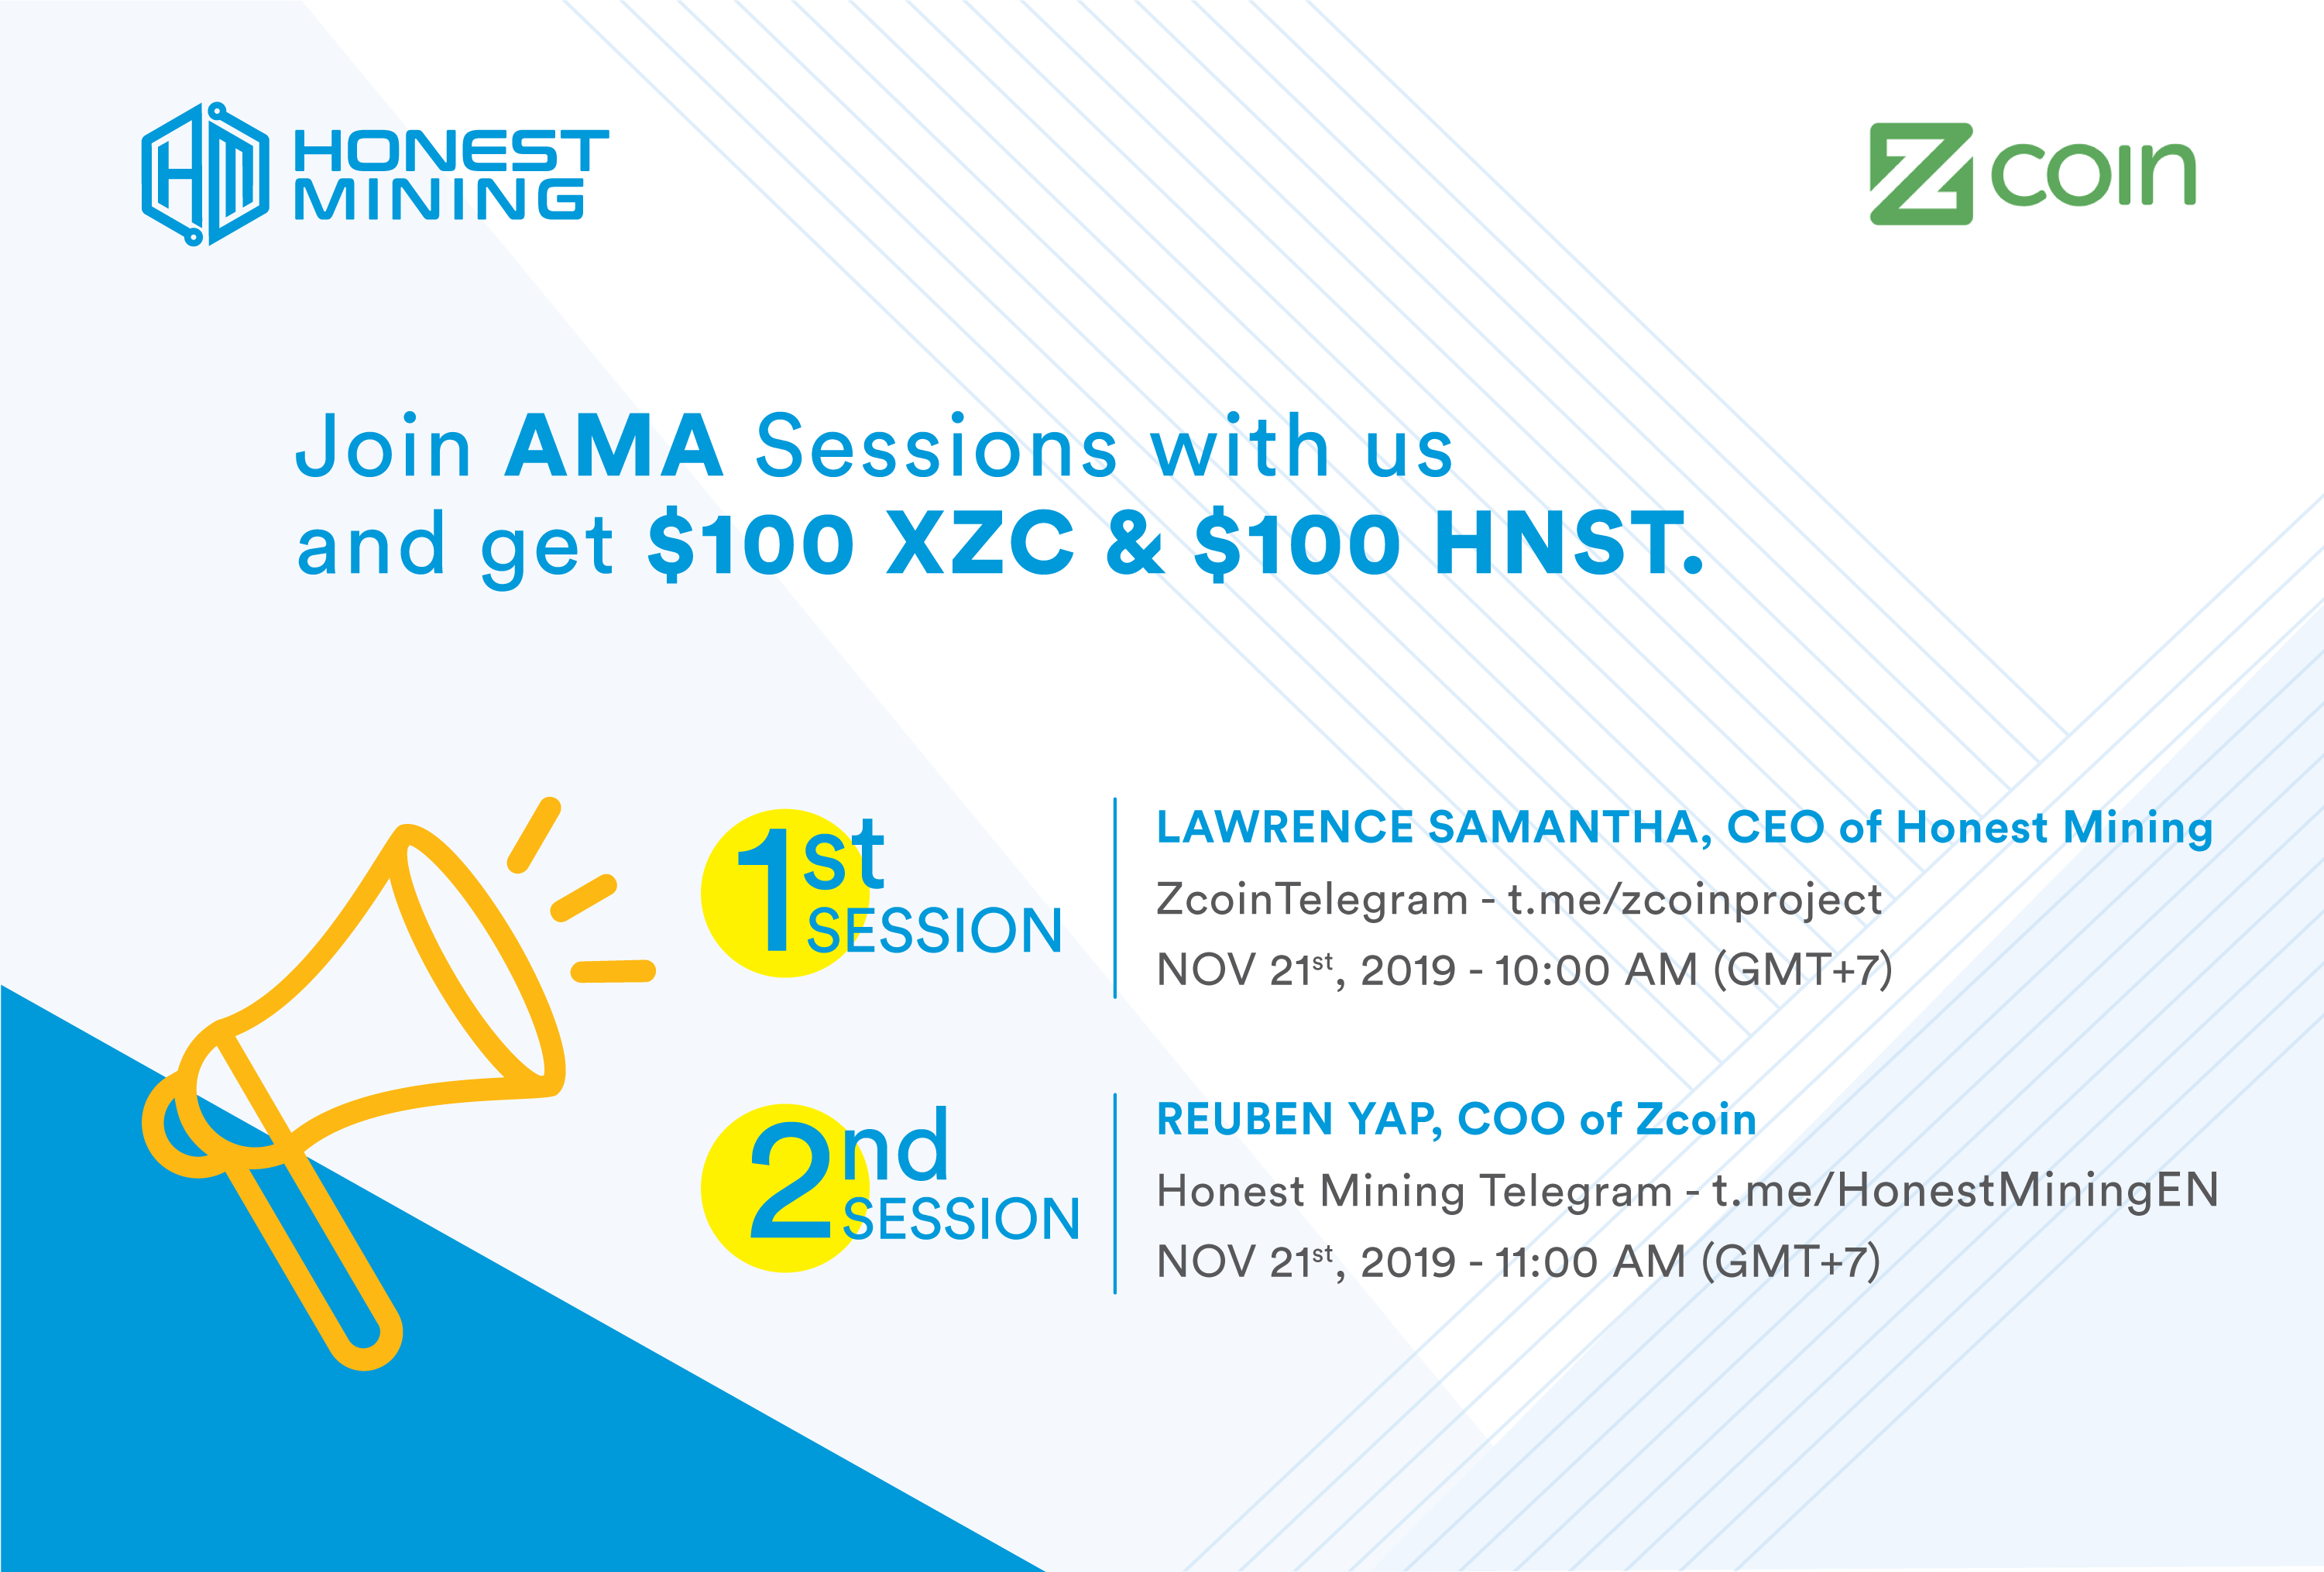 Honest Mining AMA Session with Zcoin